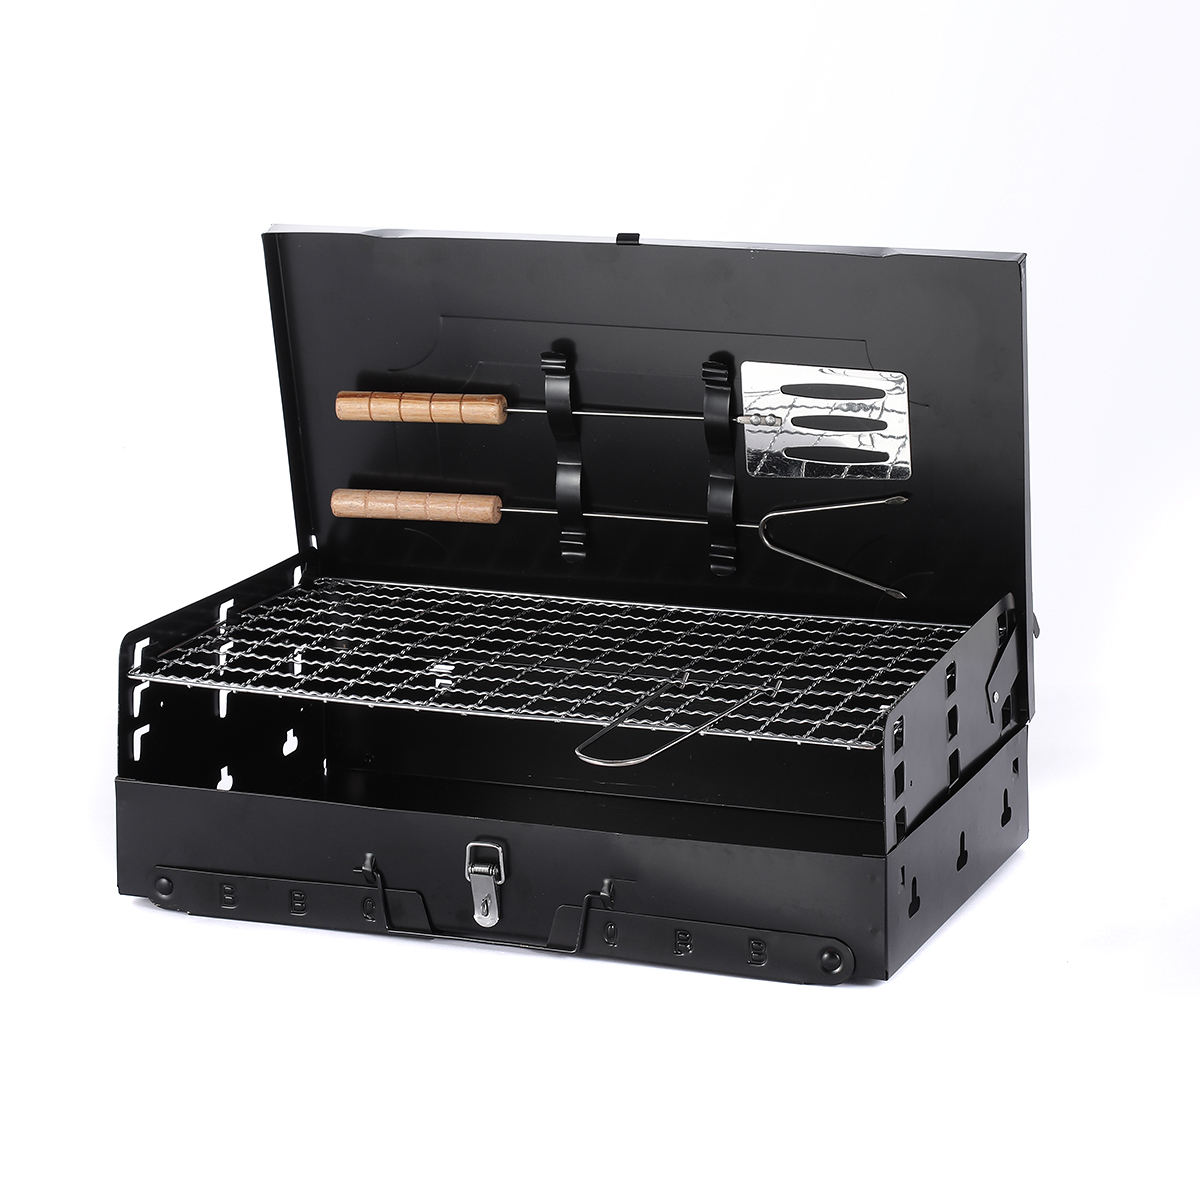 Charcoal Bbq Grill Portable,Perfect for Tailgating,Camping or Any Outdoor Event